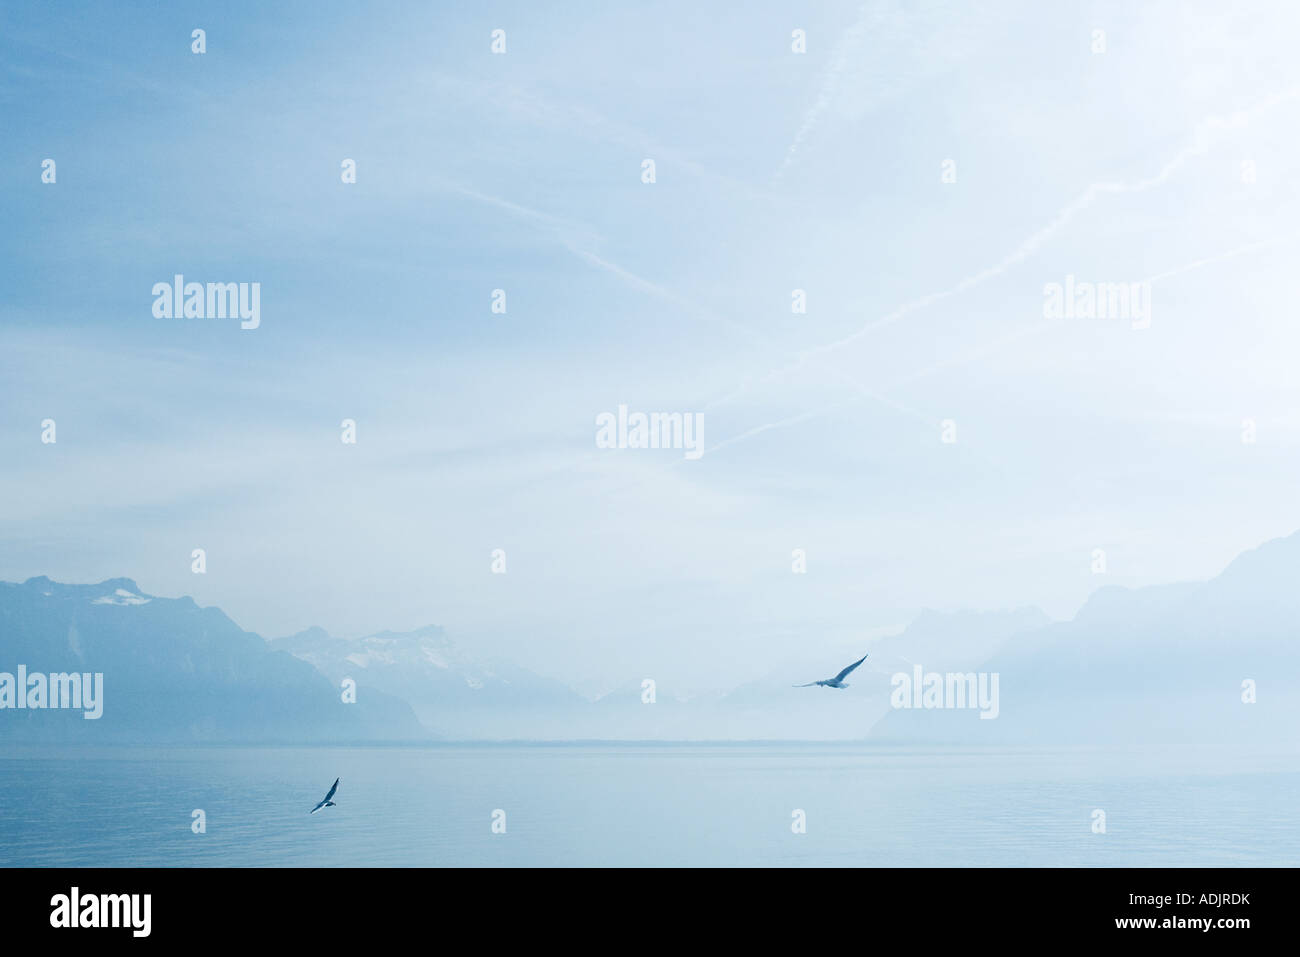 Birds flying over lake - Stock Image